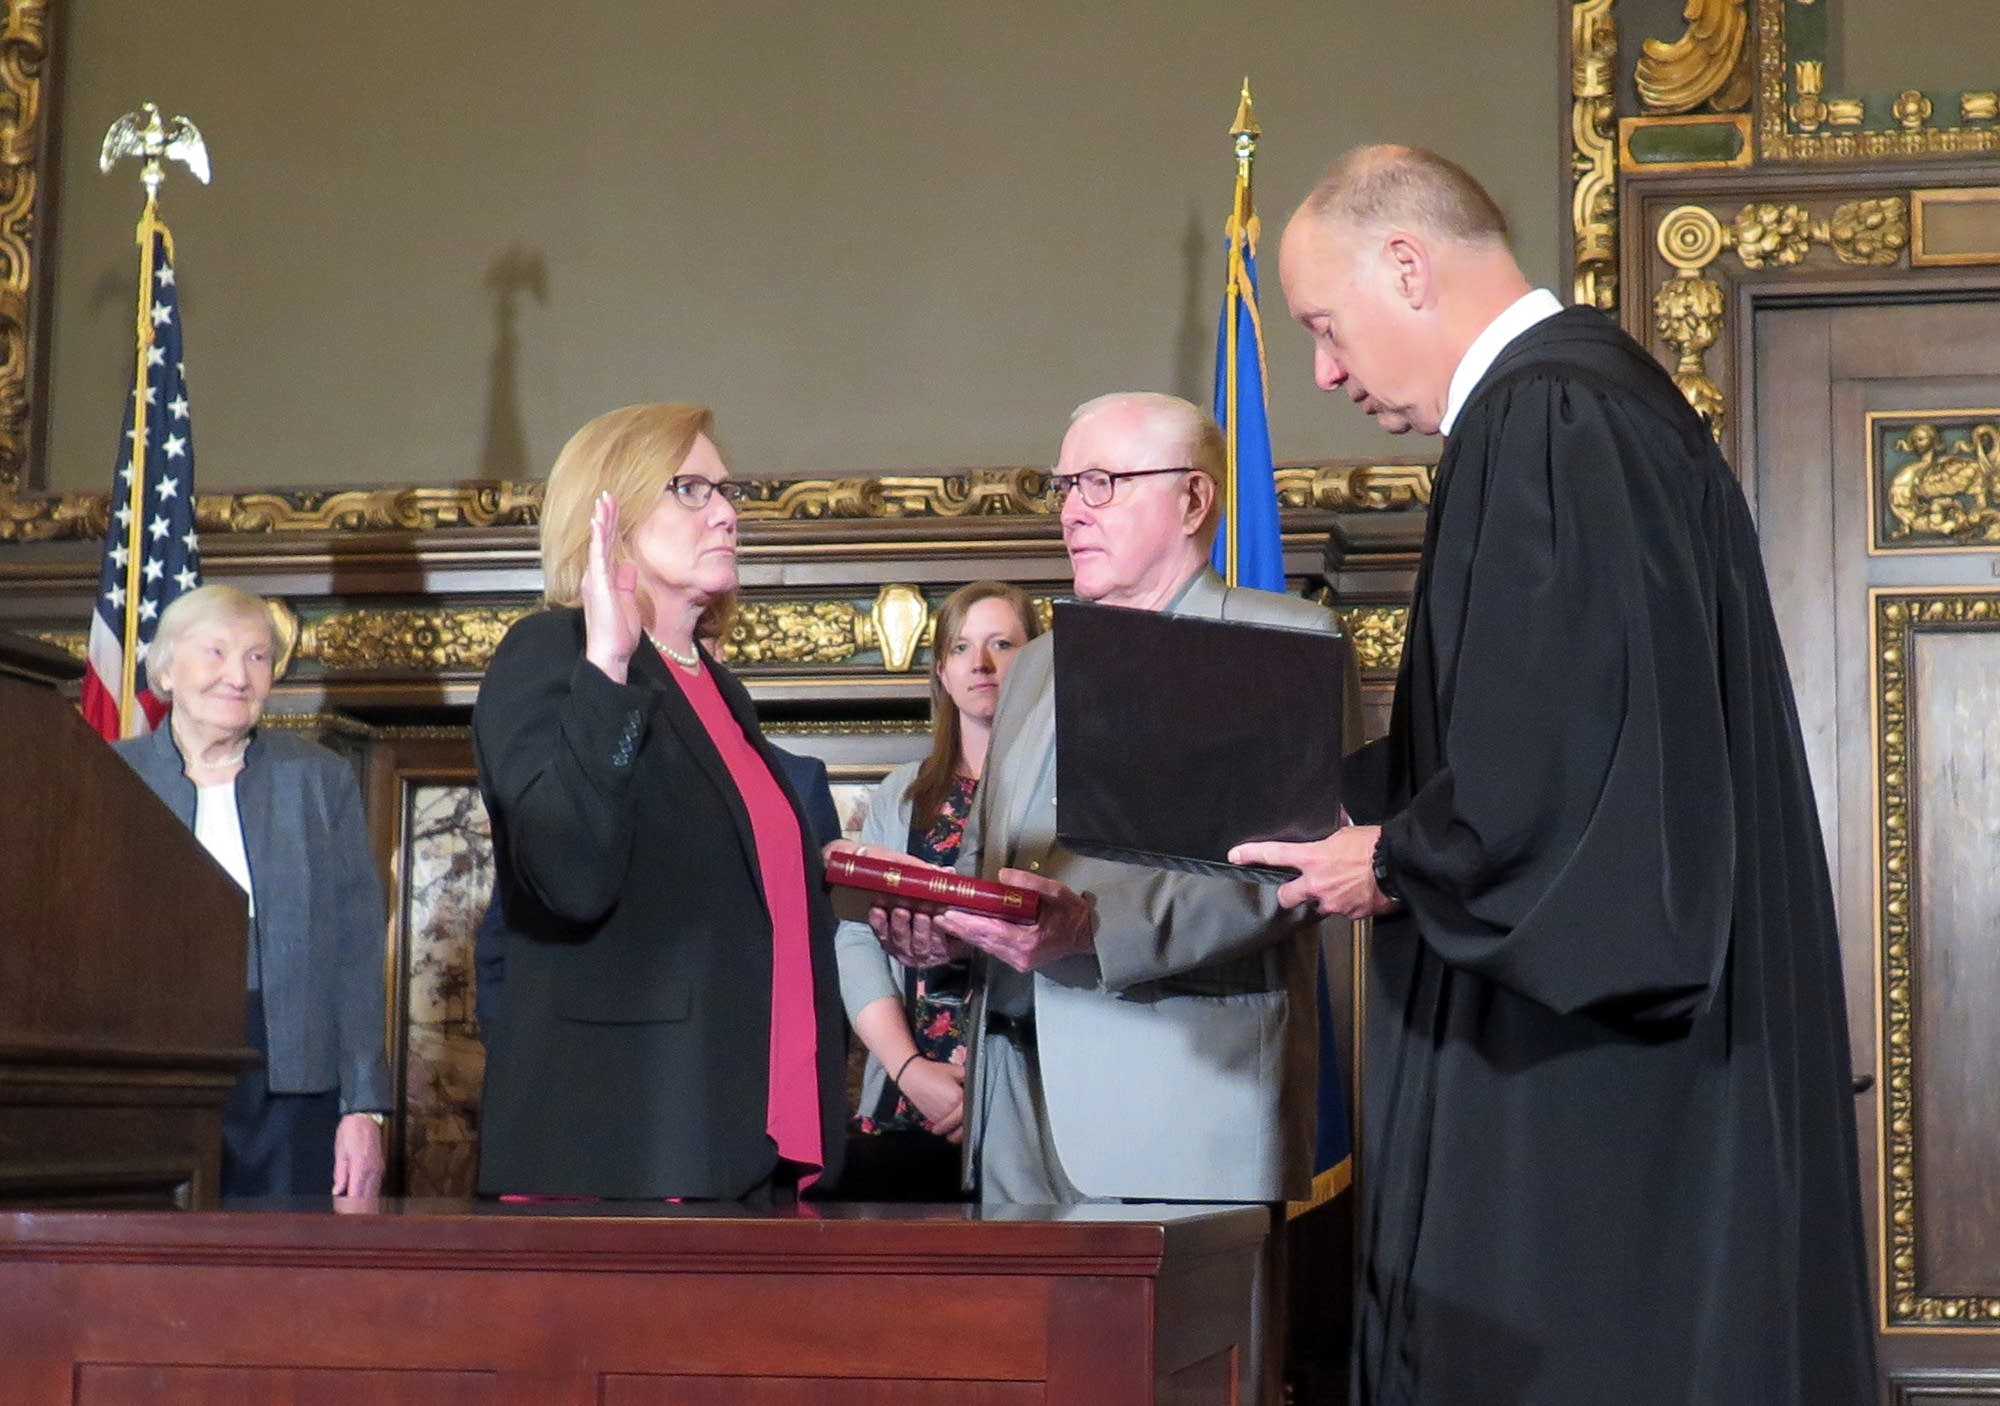 Michelle Fischbach took the oath of office for lieutenant governor.